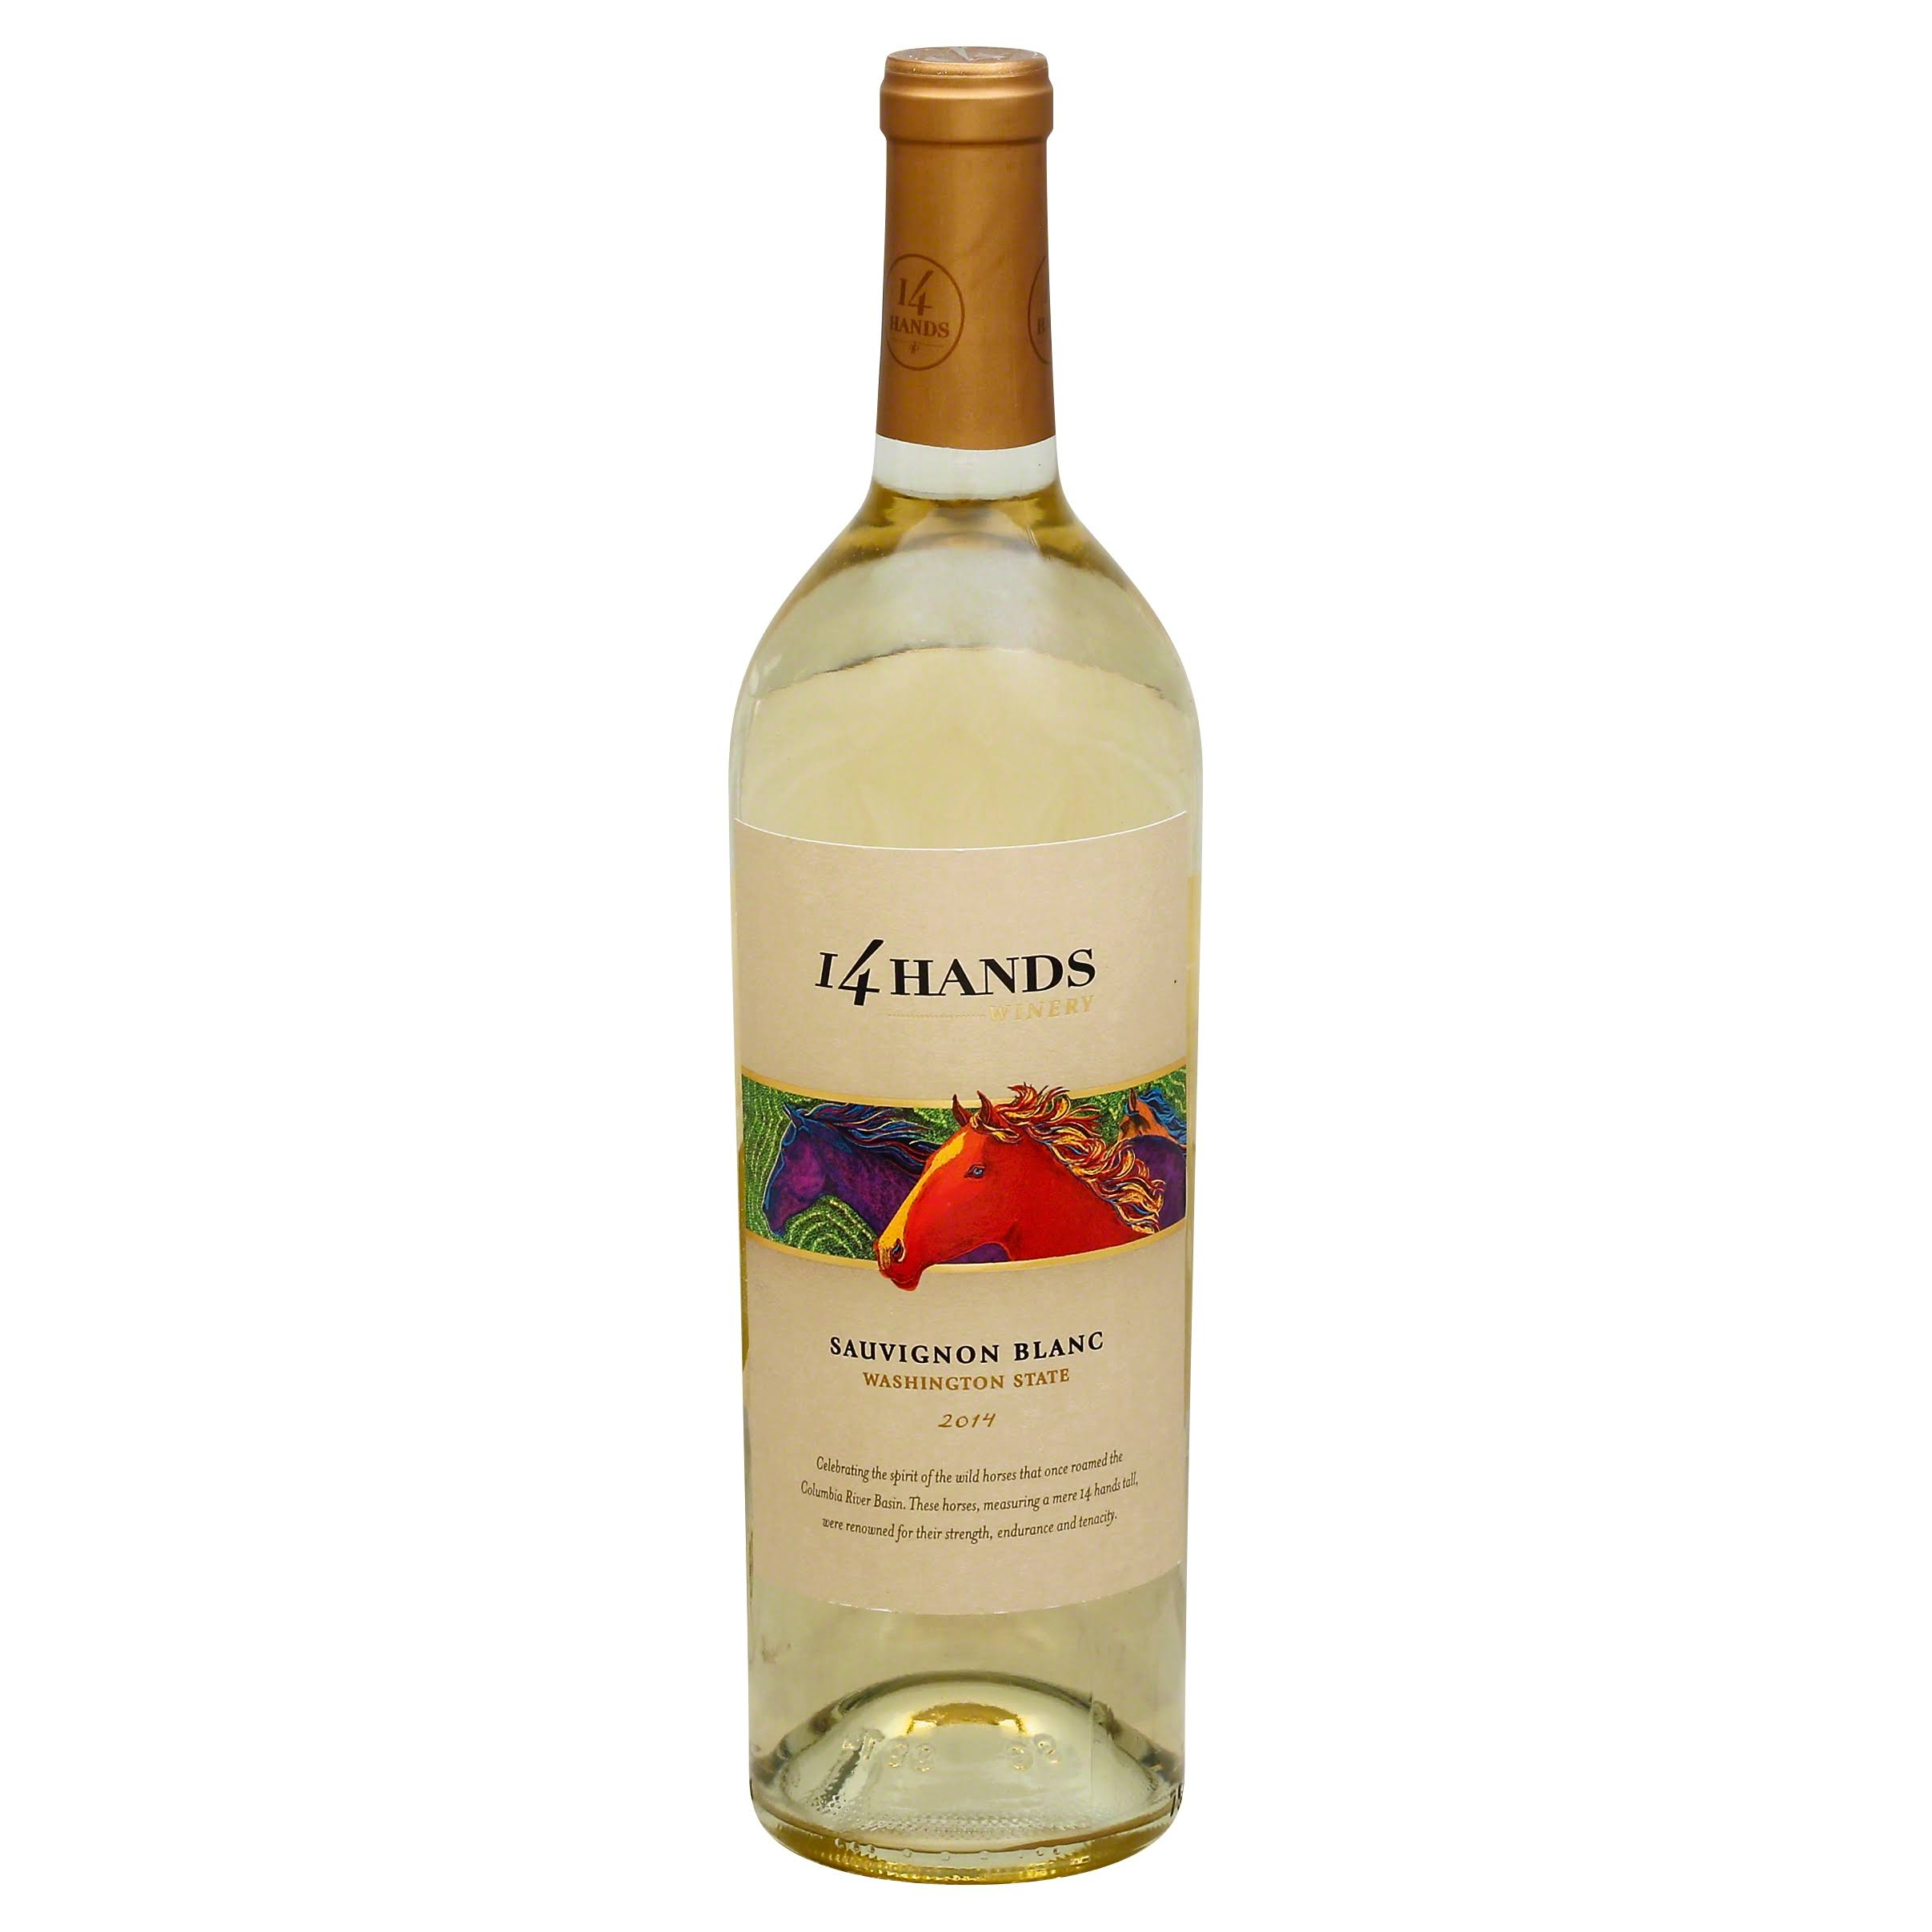 14 Hands Sauvignon Blanc, Washington State, 2014 - 750 ml